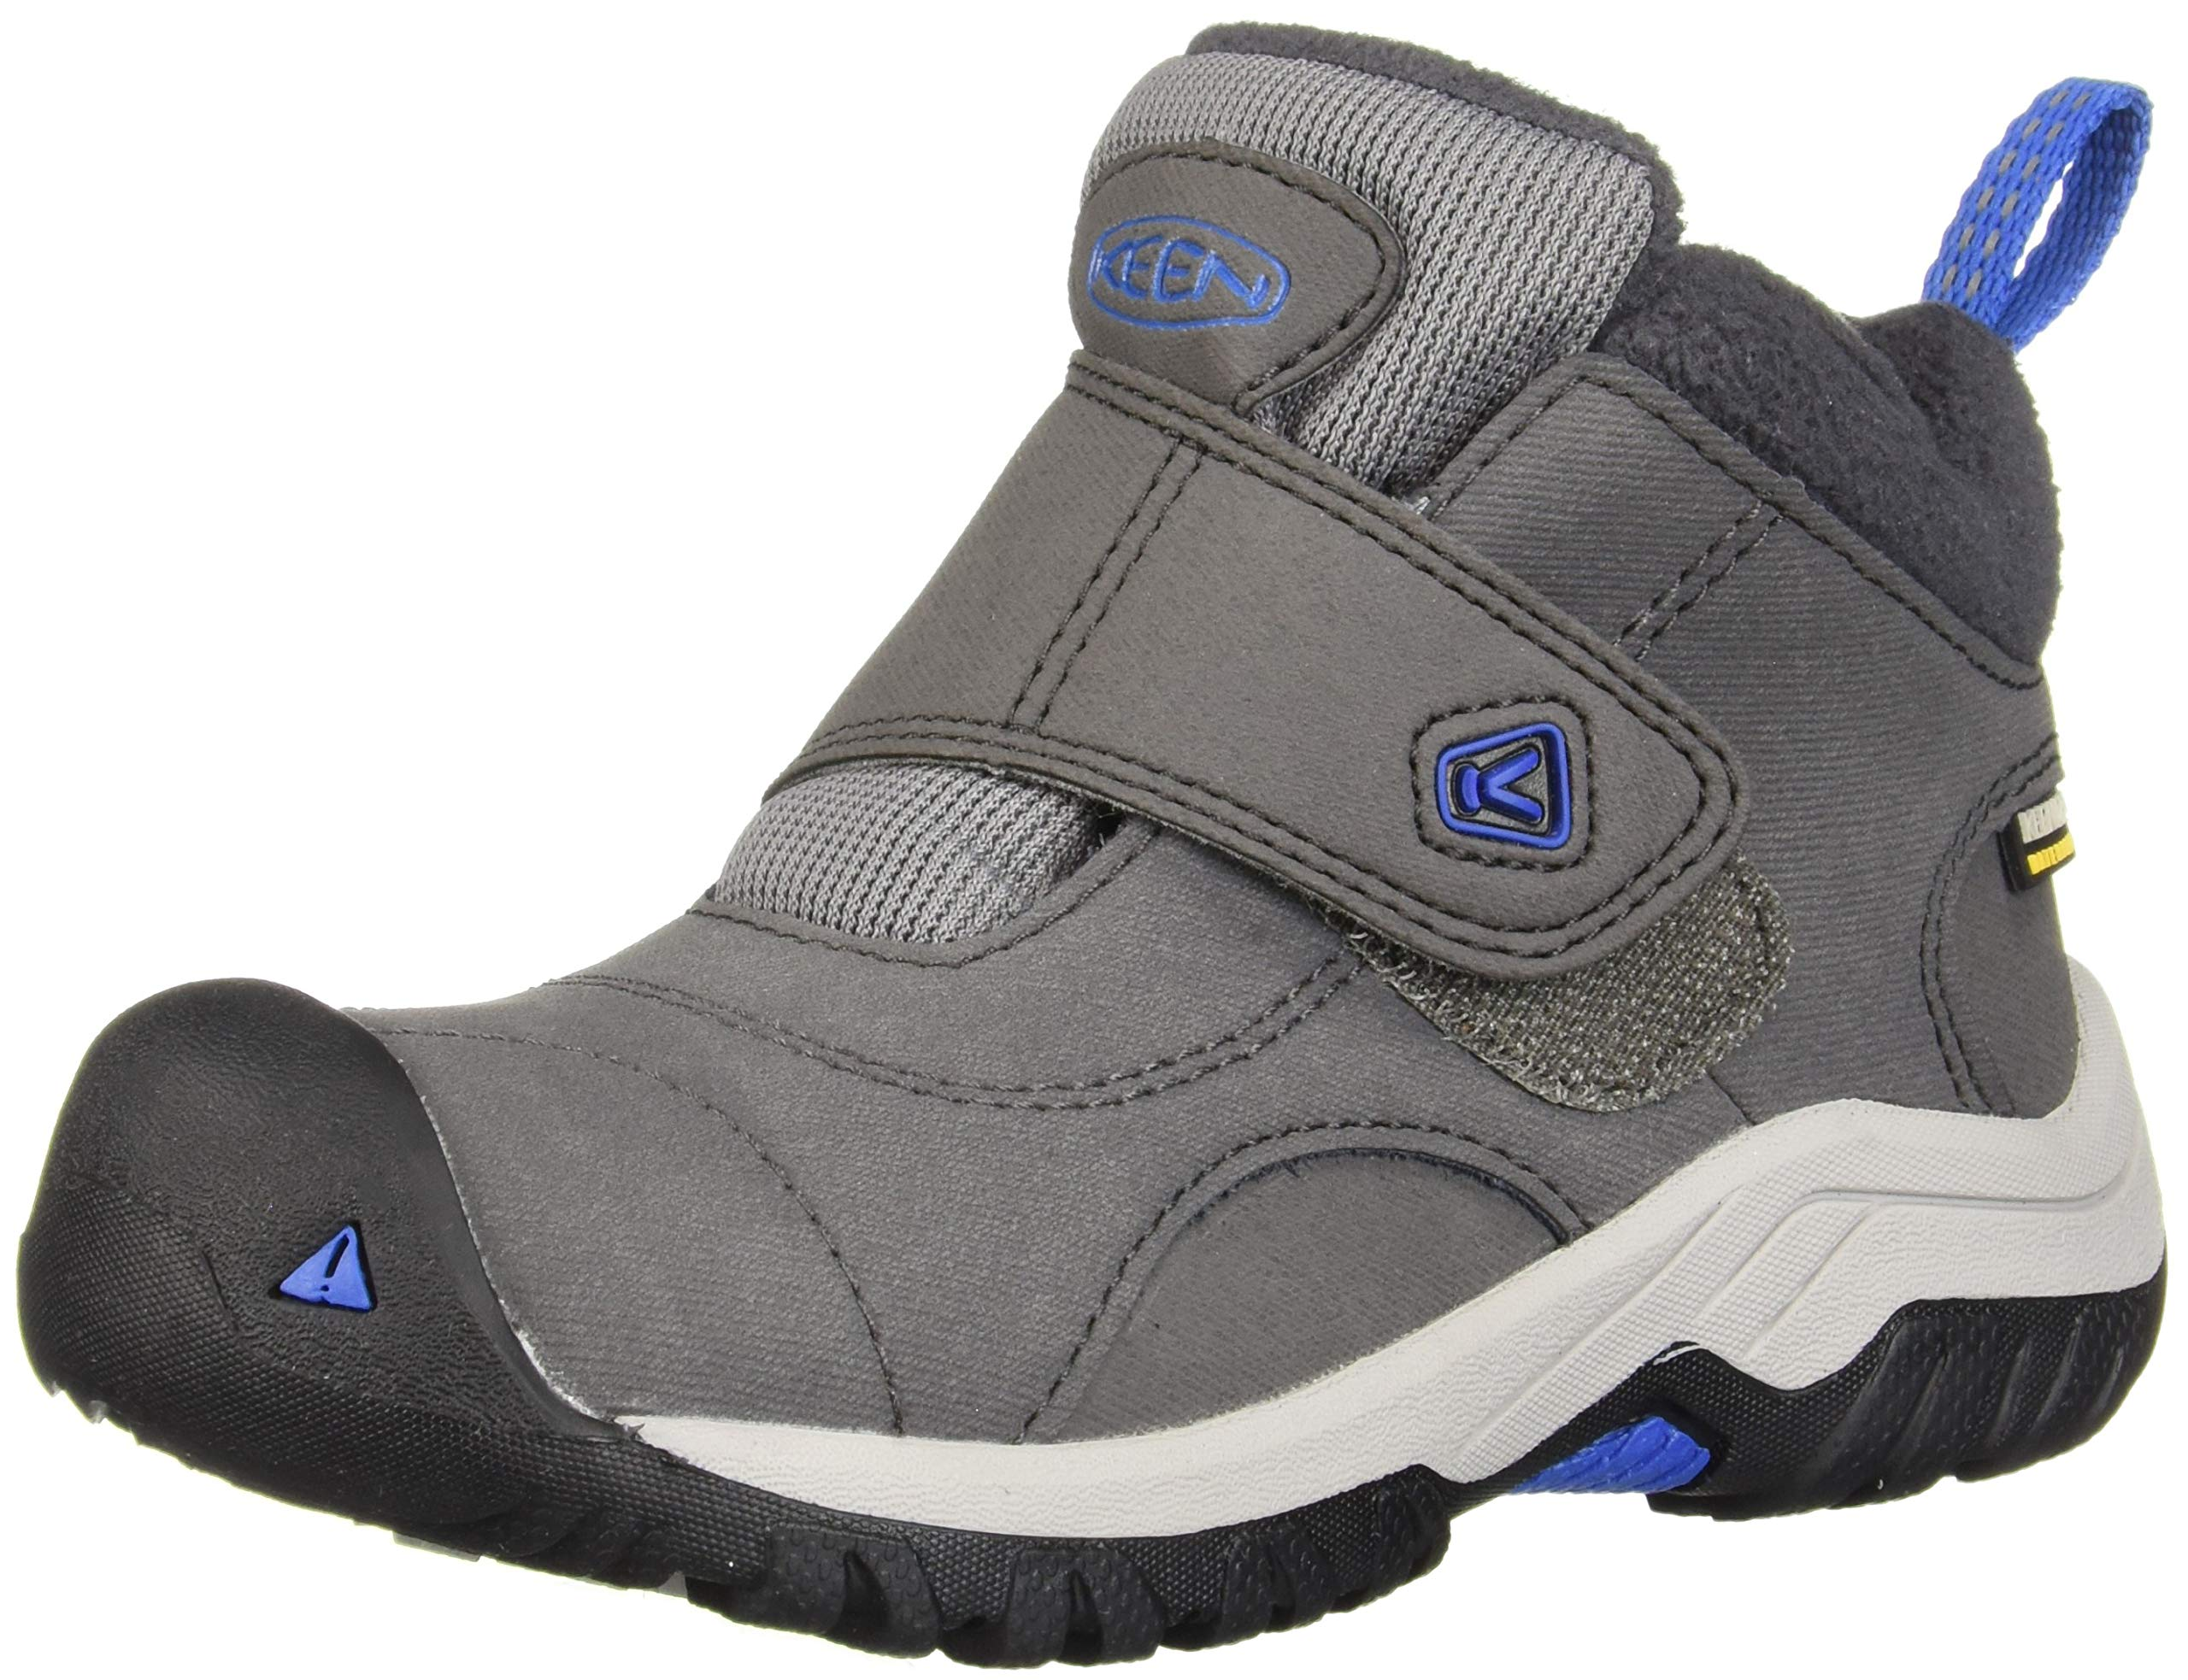 Keen Unisex Kootenay II WP Hiking Boot Magnet/Baleine Blue 13 M US Little Kid